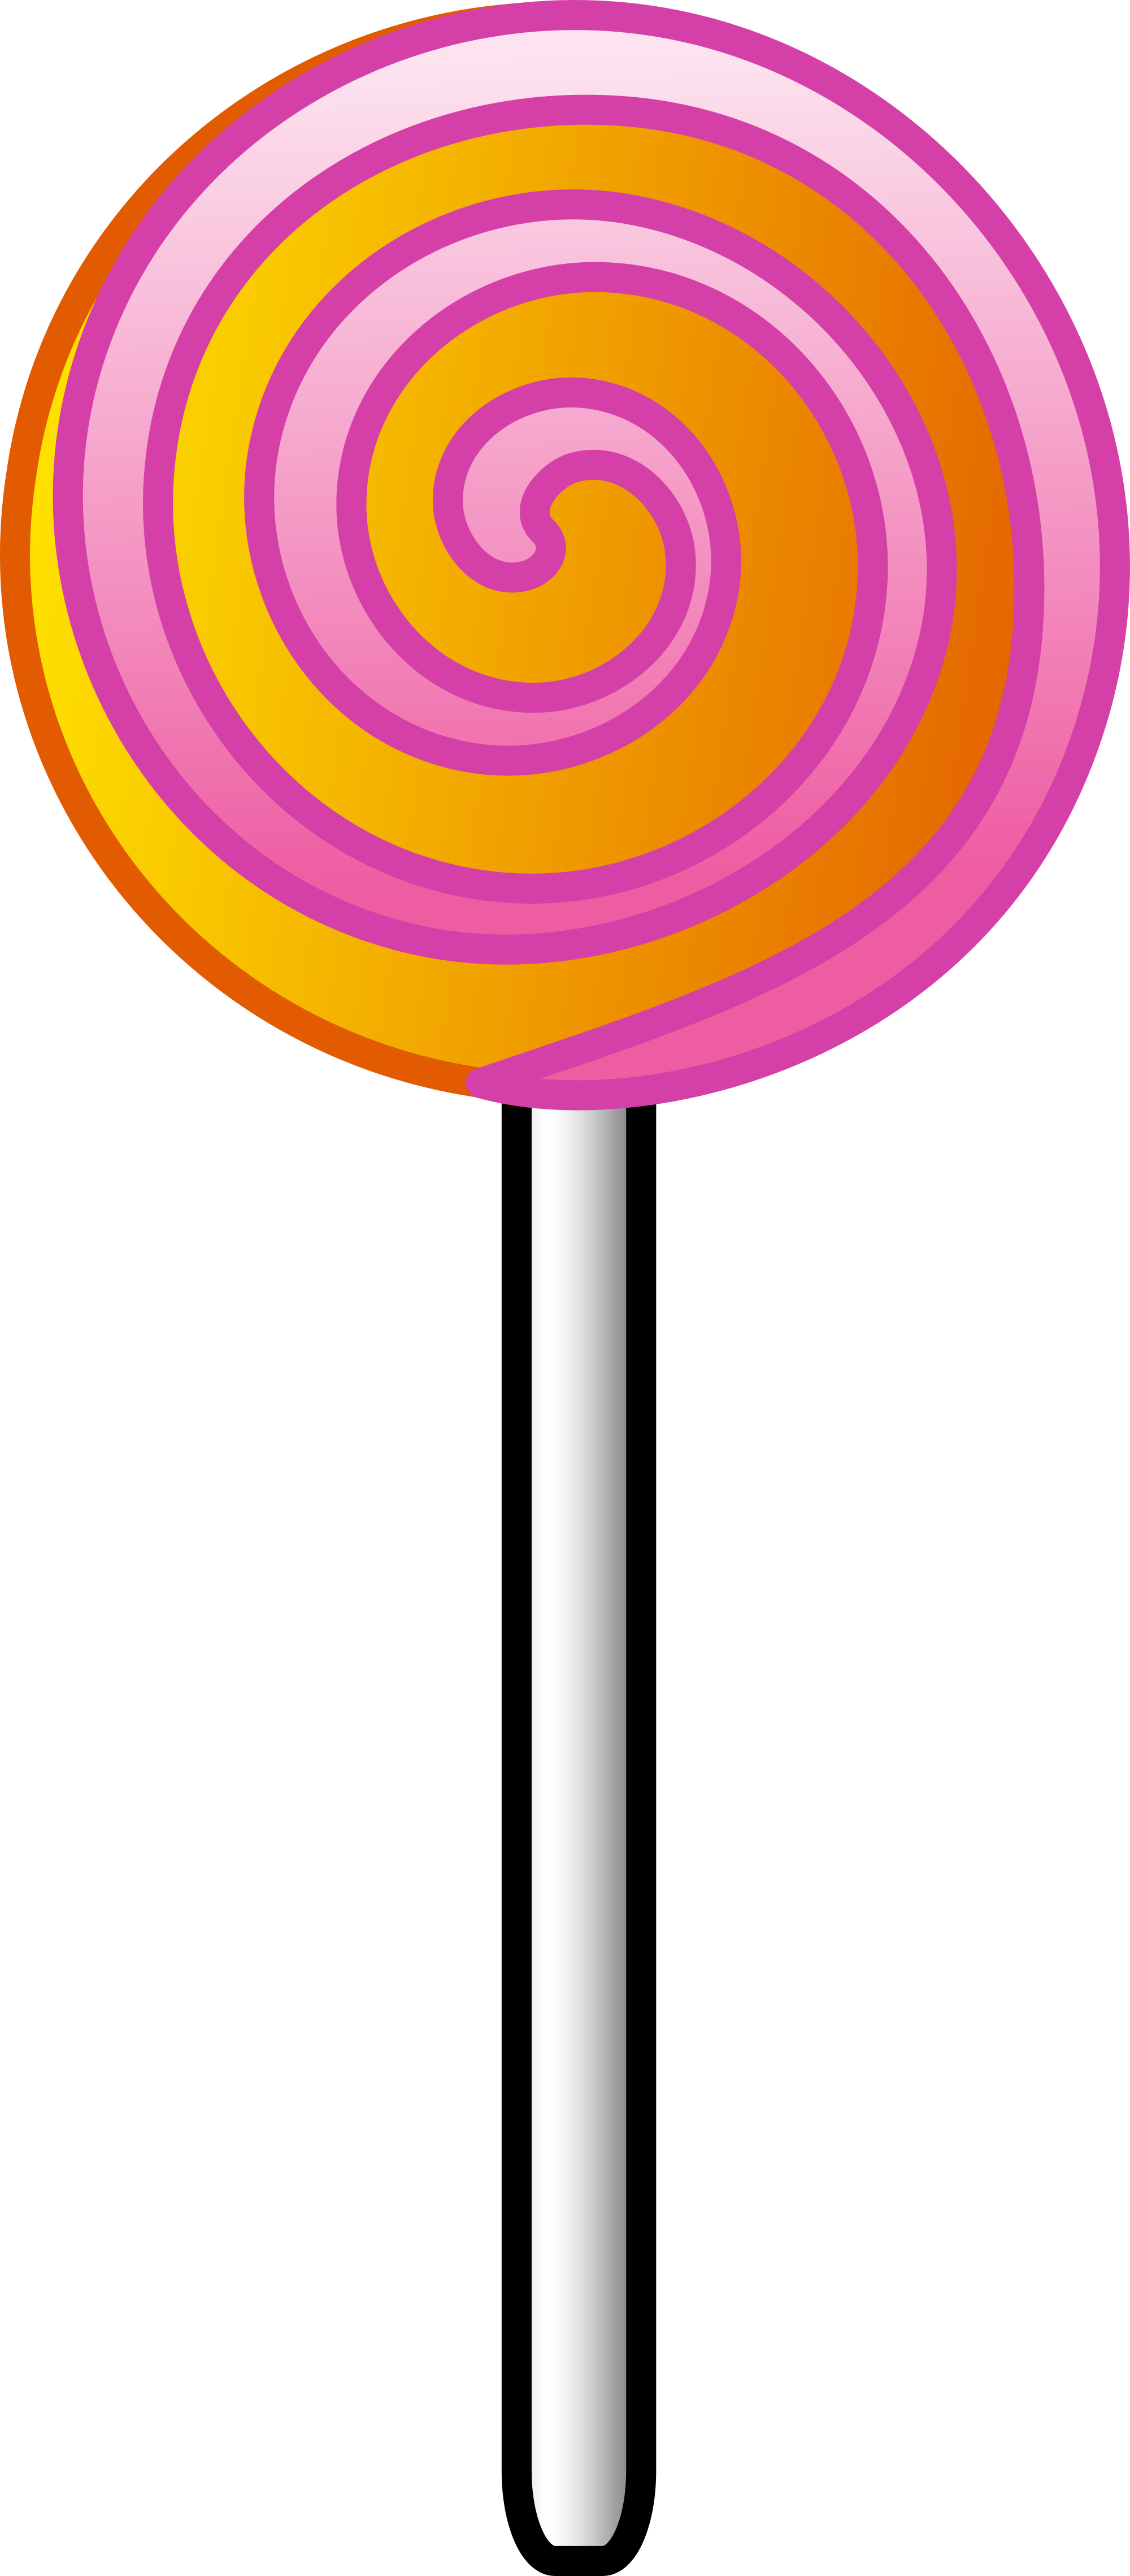 Lollipop clipart candyland game, Lollipop candyland game.